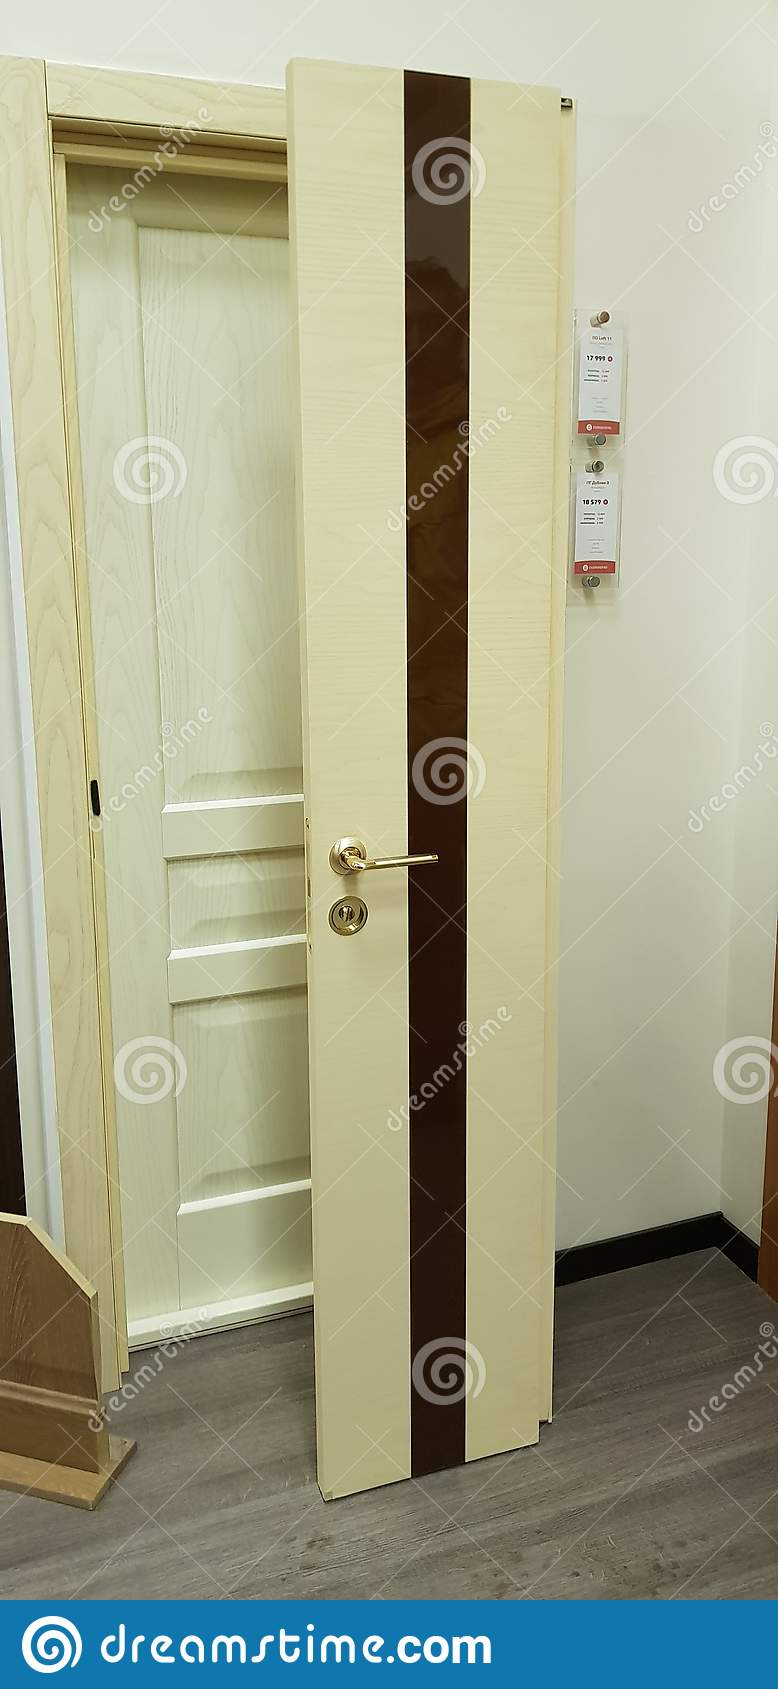 Interior Doors For Sale In A Specialized Store Editorial Stock Image Image Of Background Manufacturing 142443624